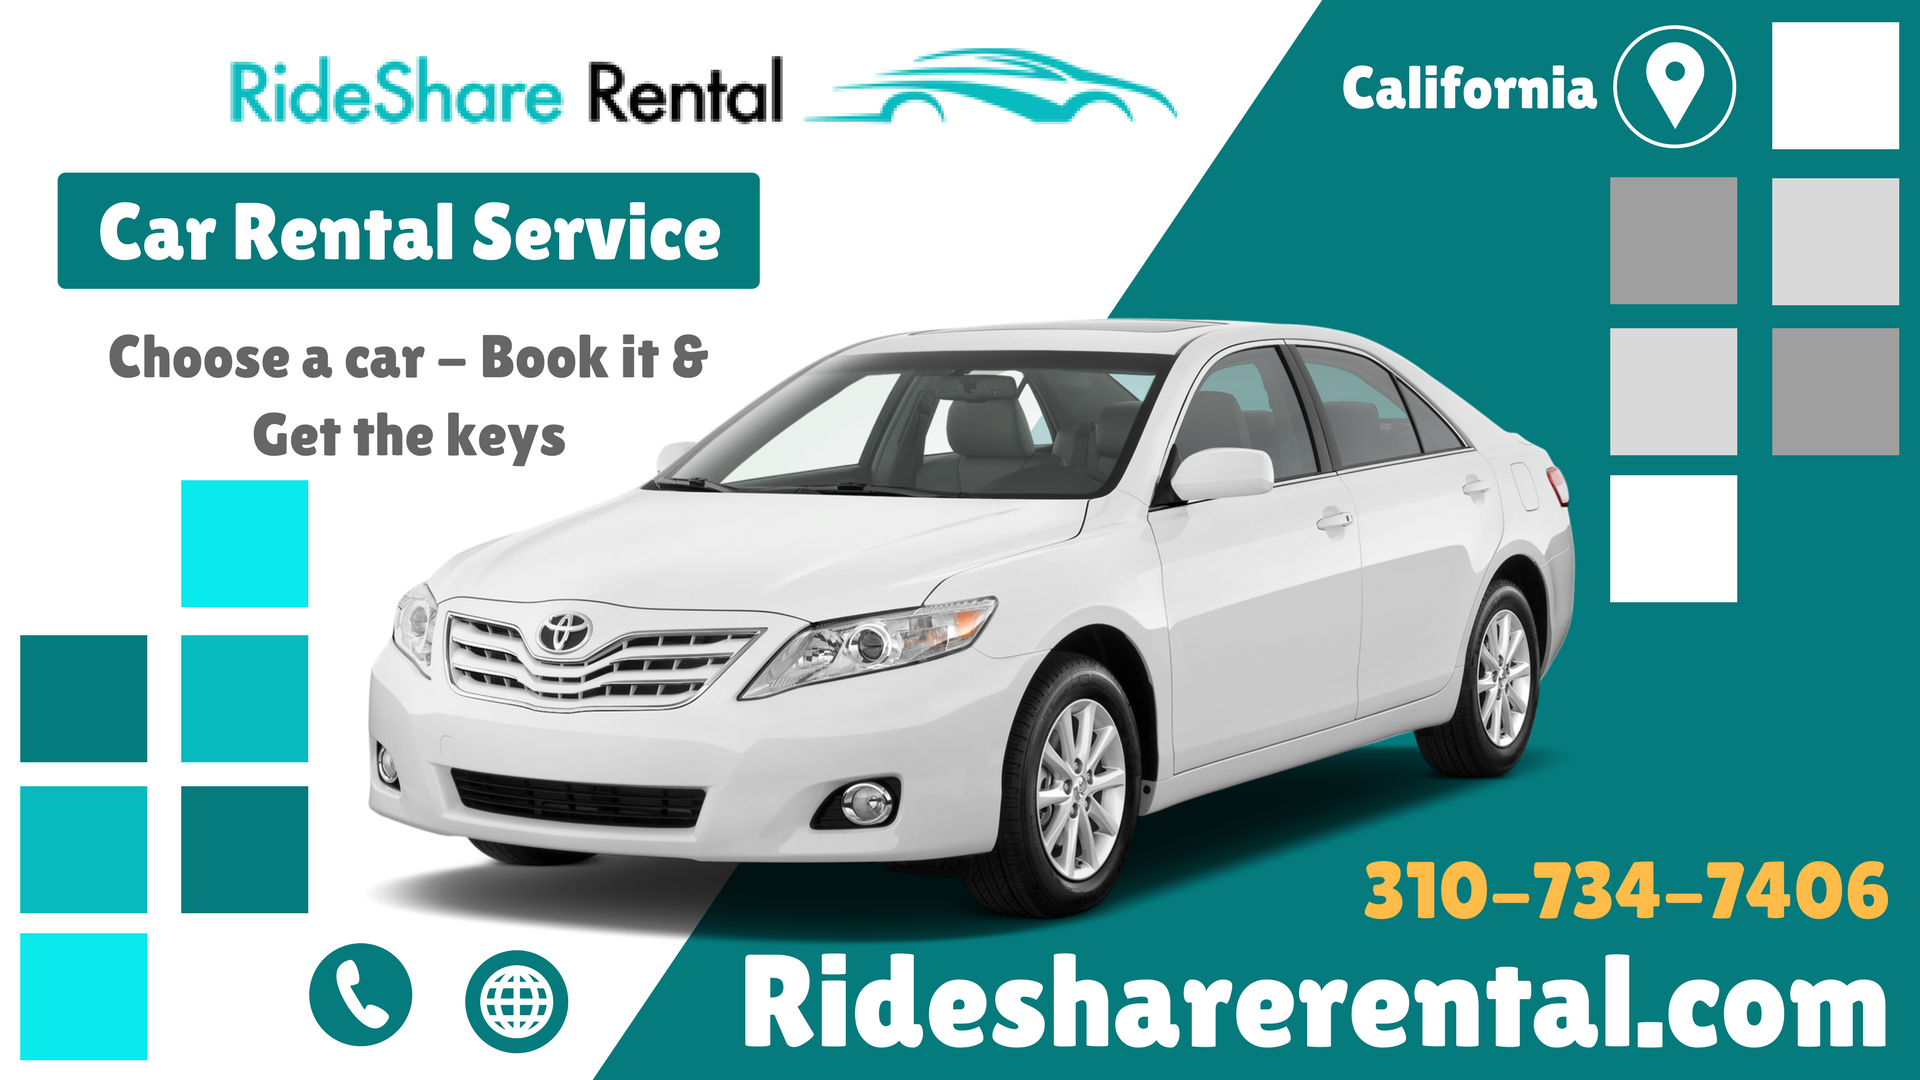 Car Rental Services In California Car Rental Car Rental Service